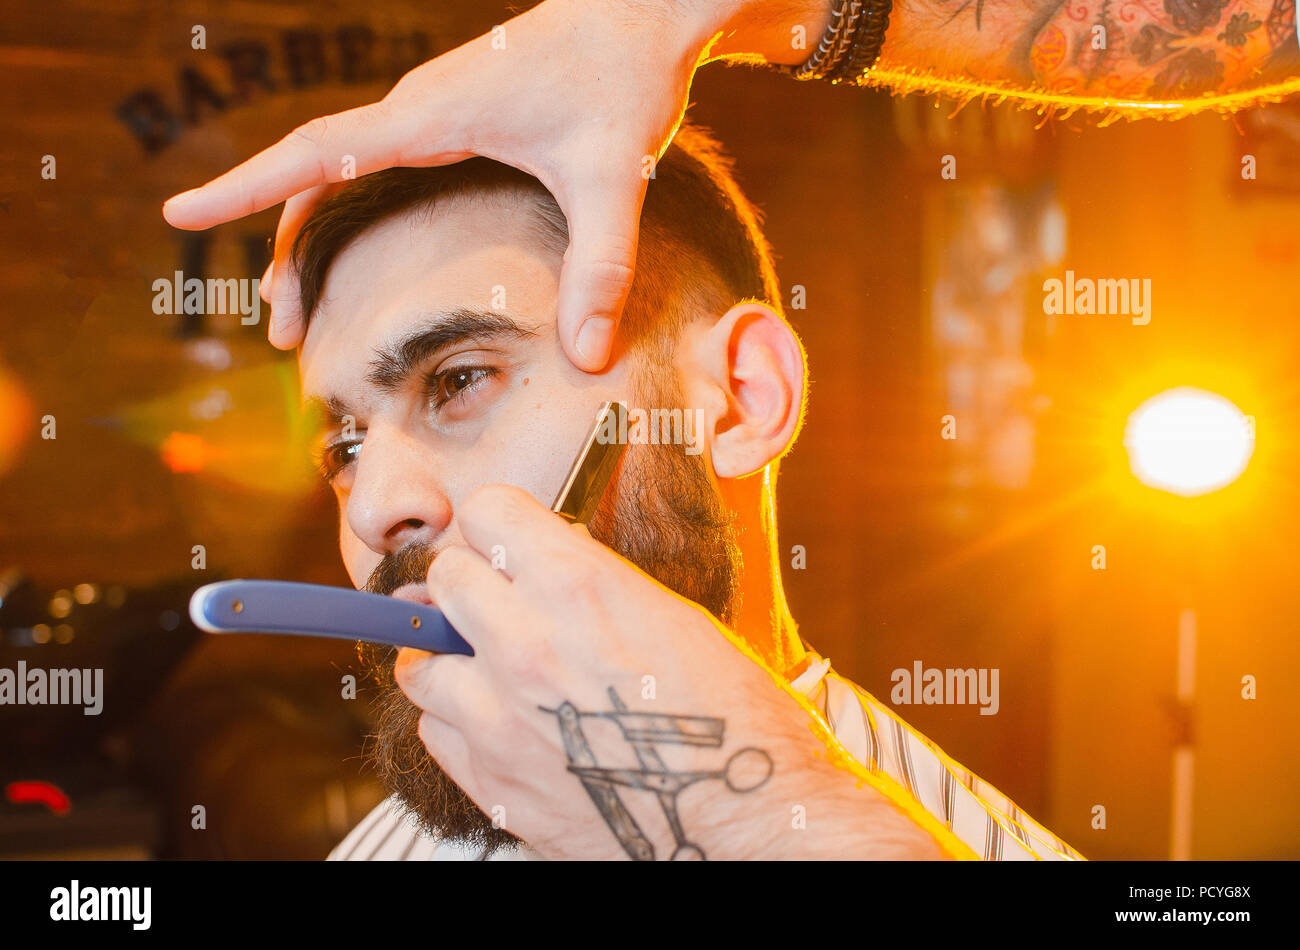 Barber shaves the dangerous razor of a handsome young man with a mustache and beard. Shaving a dangerous razor in a male hairdresser - Stock Image